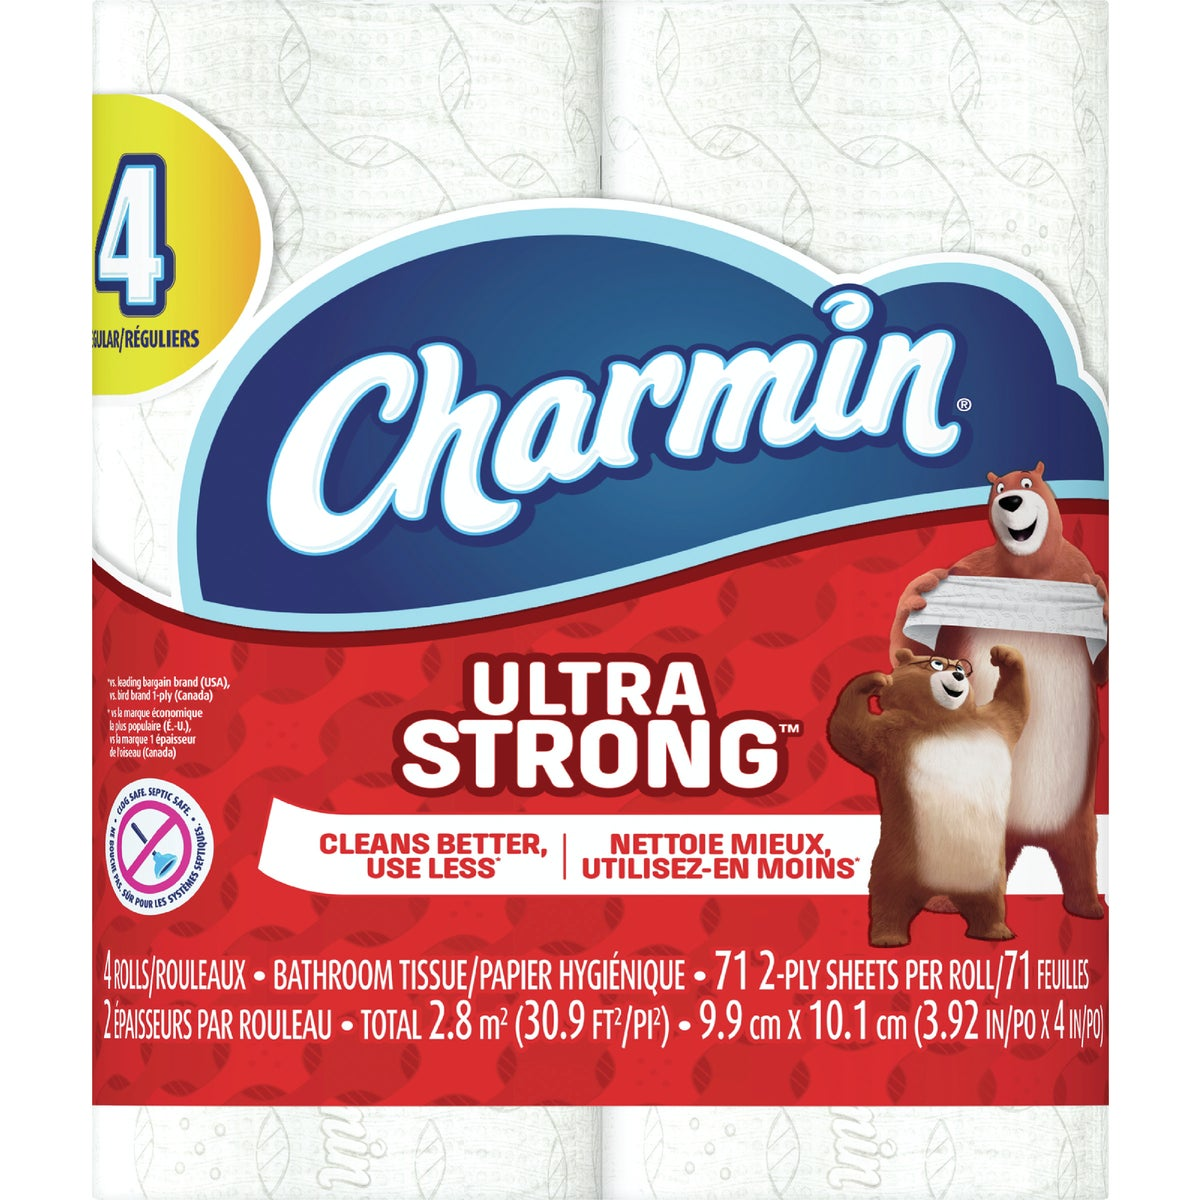 4 REGULAR ROLL CHARMIN